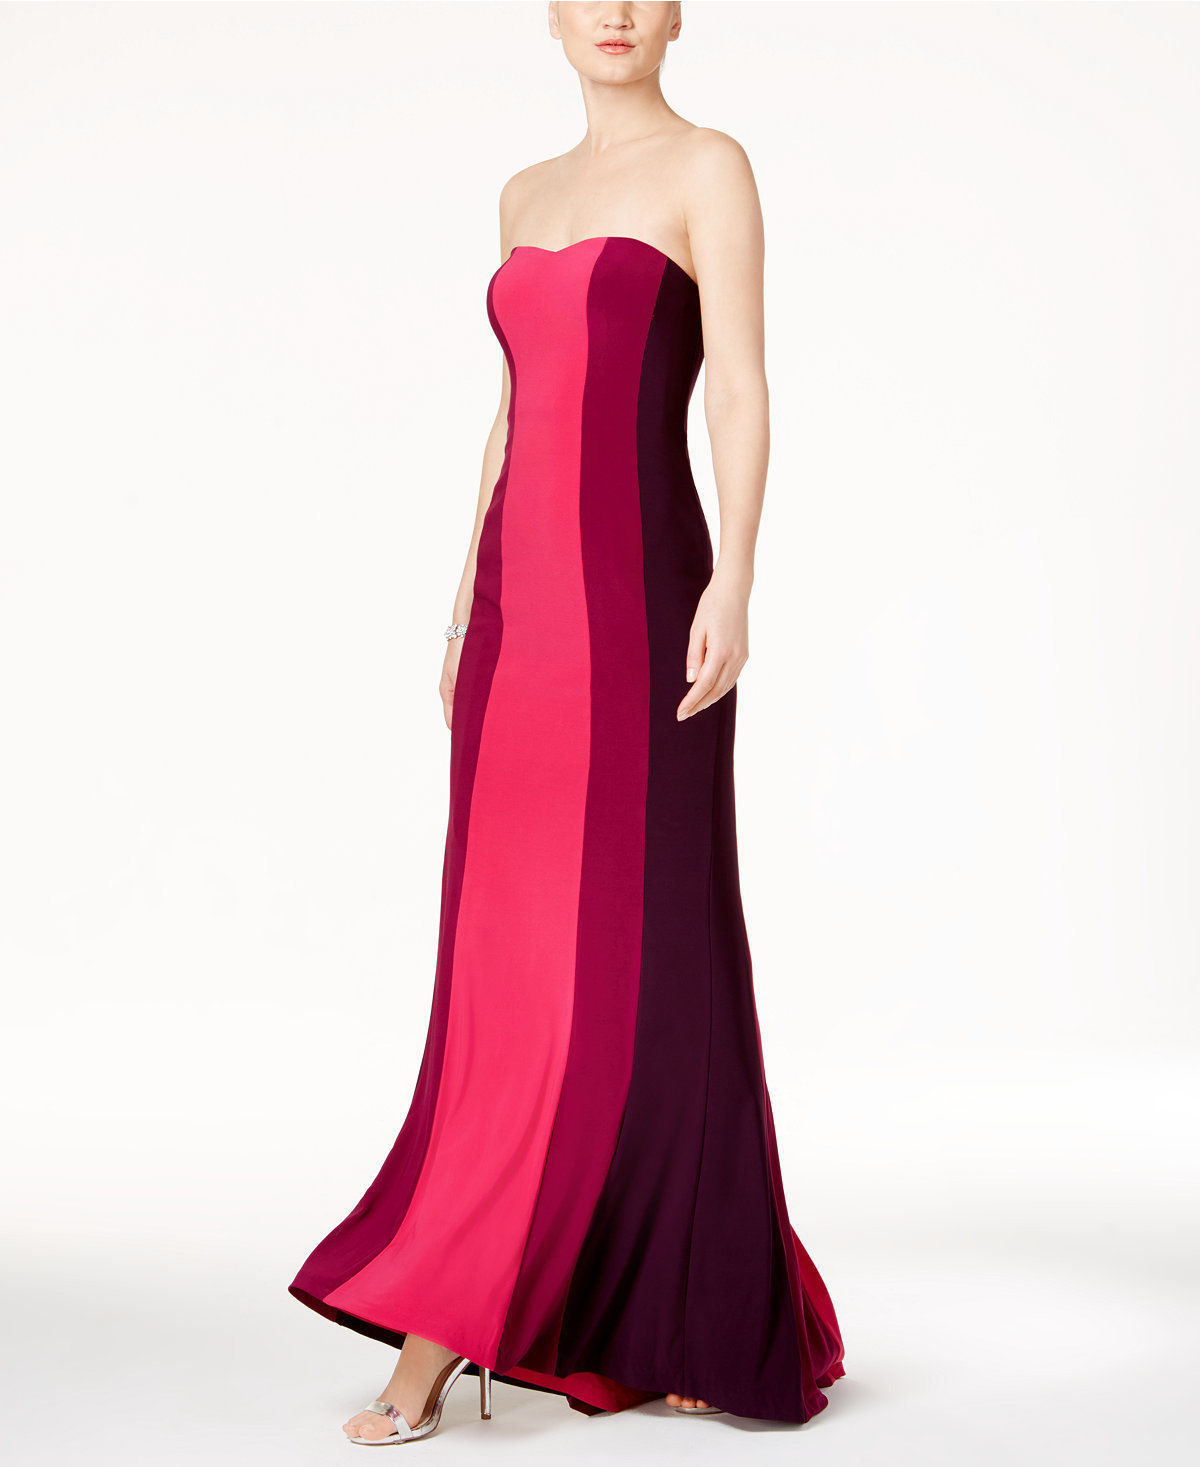 Adrianna Papell Colorblocked Strapless Gown Fuchsia Multi Size 6